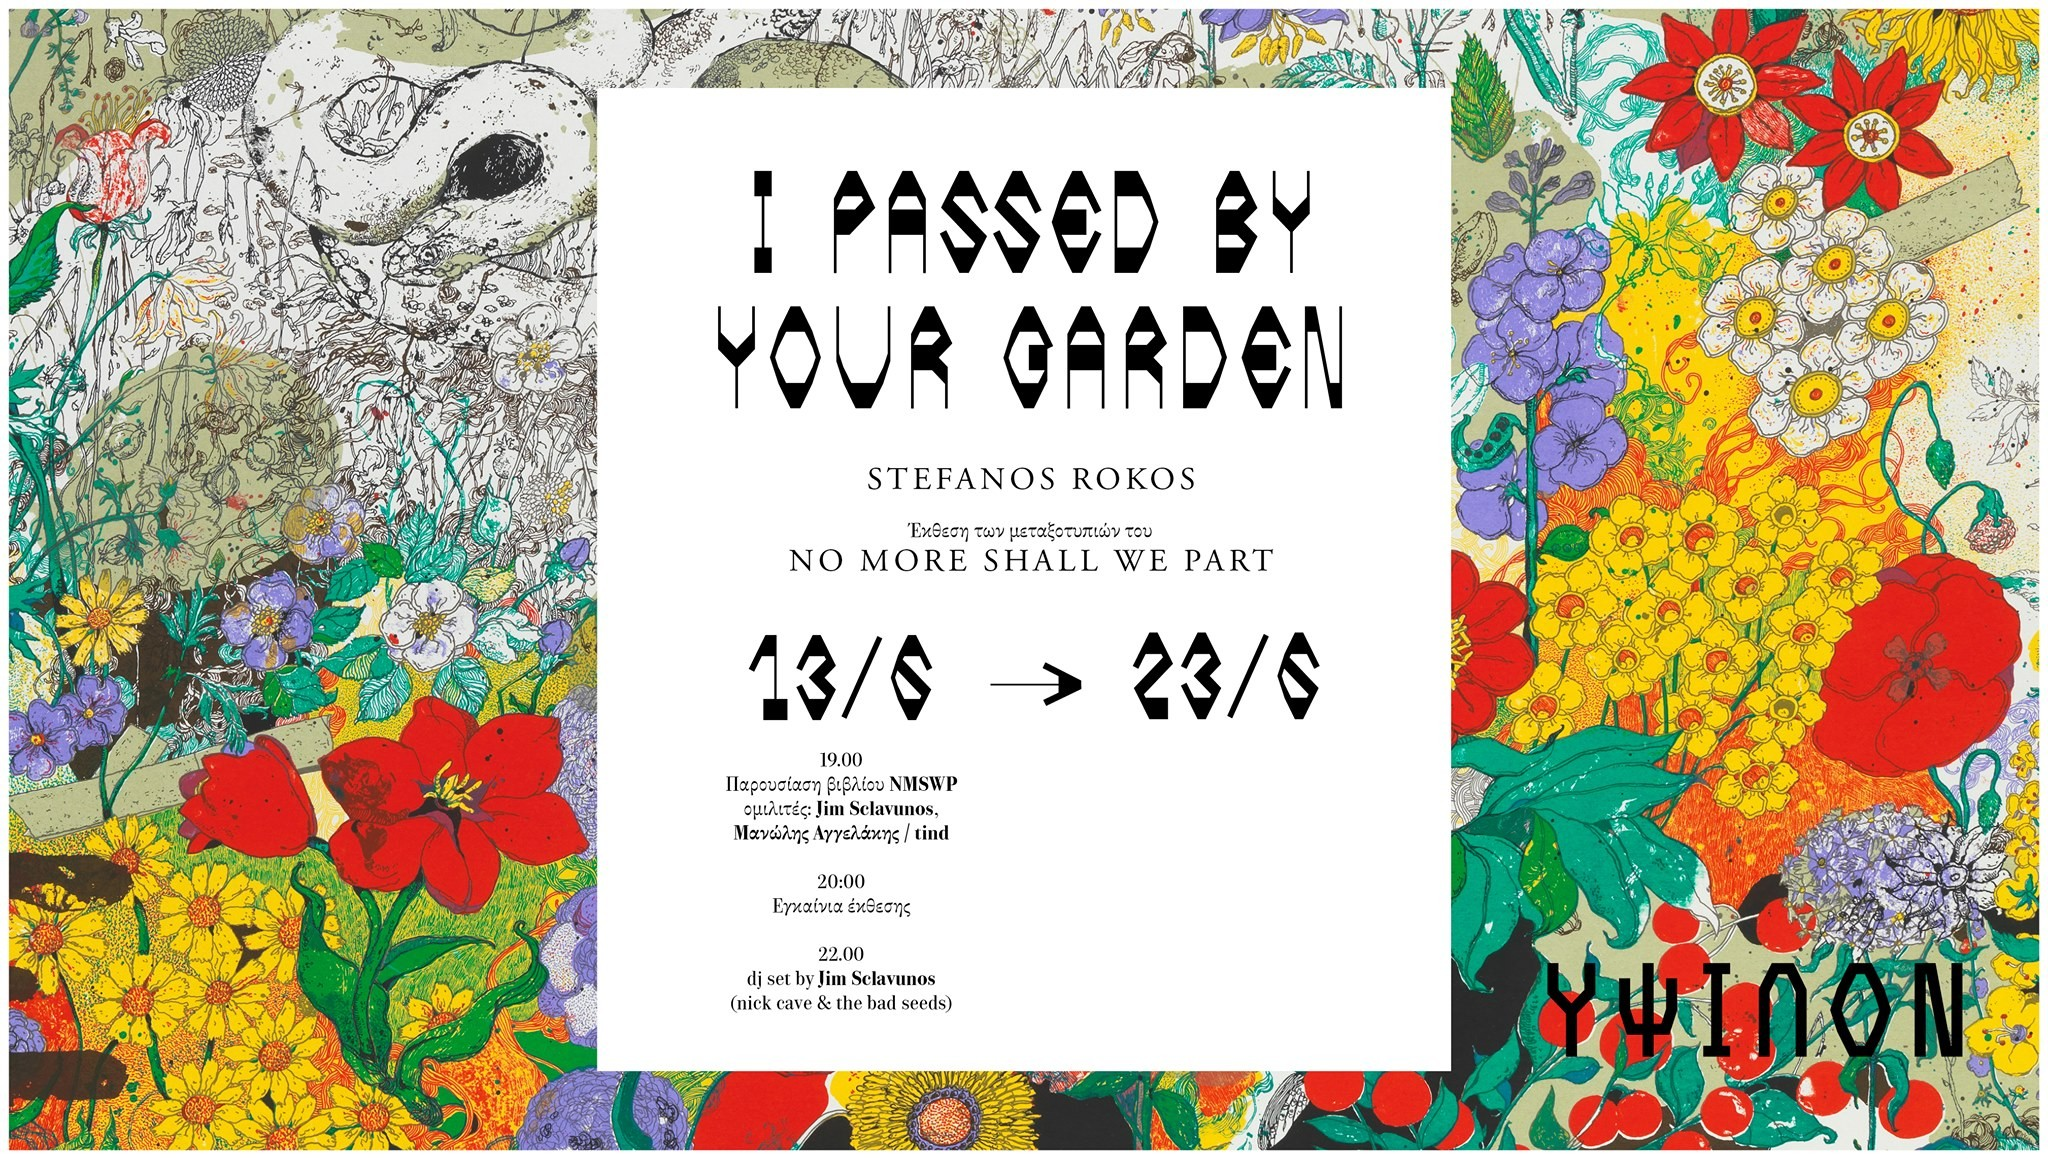 passed-by-your-garden.jpg